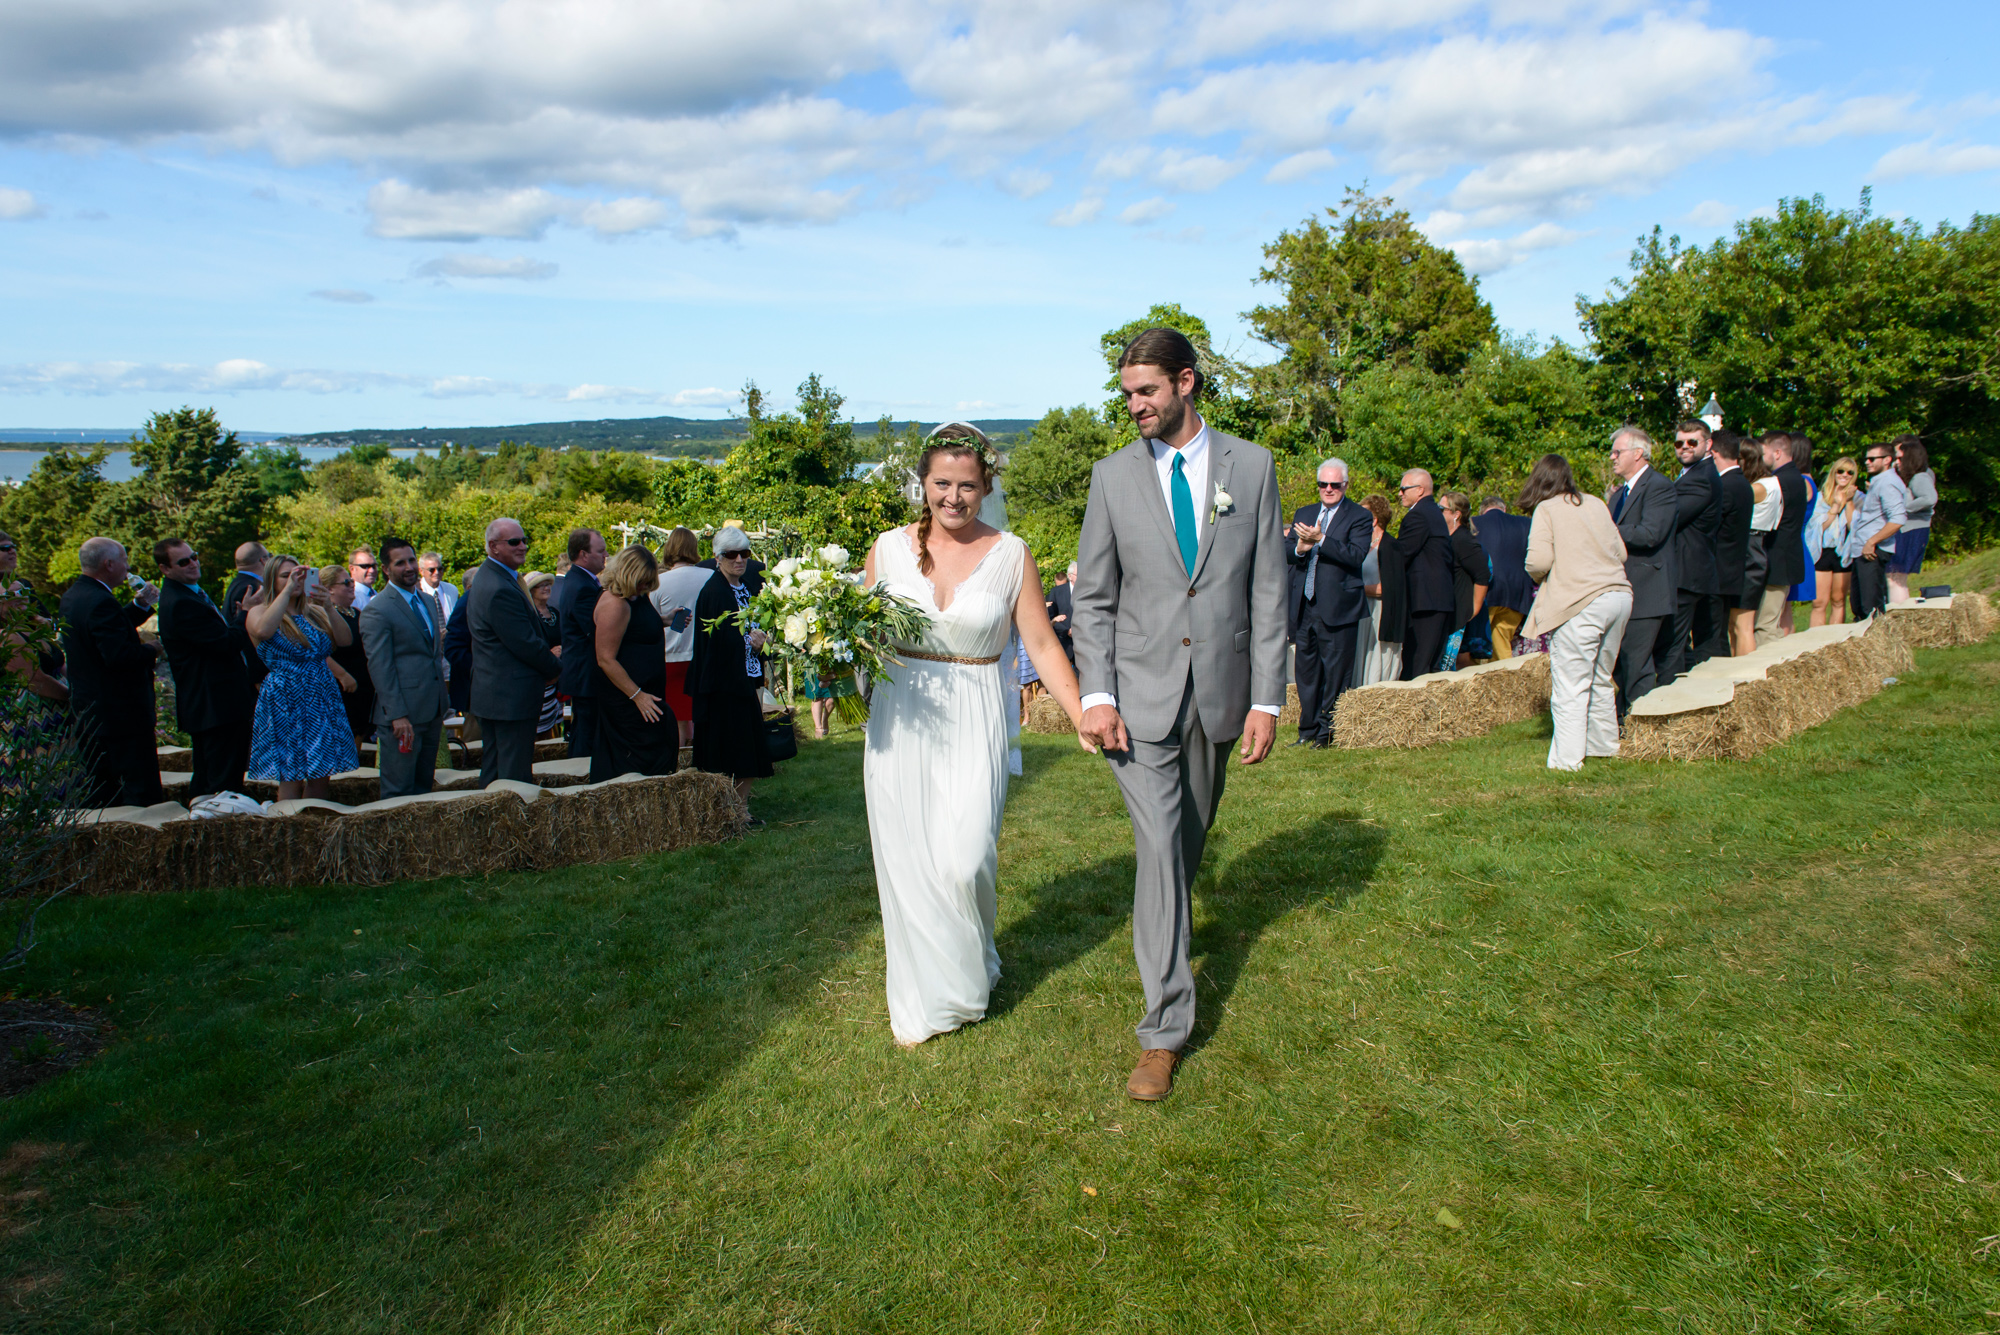 A bride and groom exit their ceremony at The Tower House in Chilmark photo by David Welch Photography